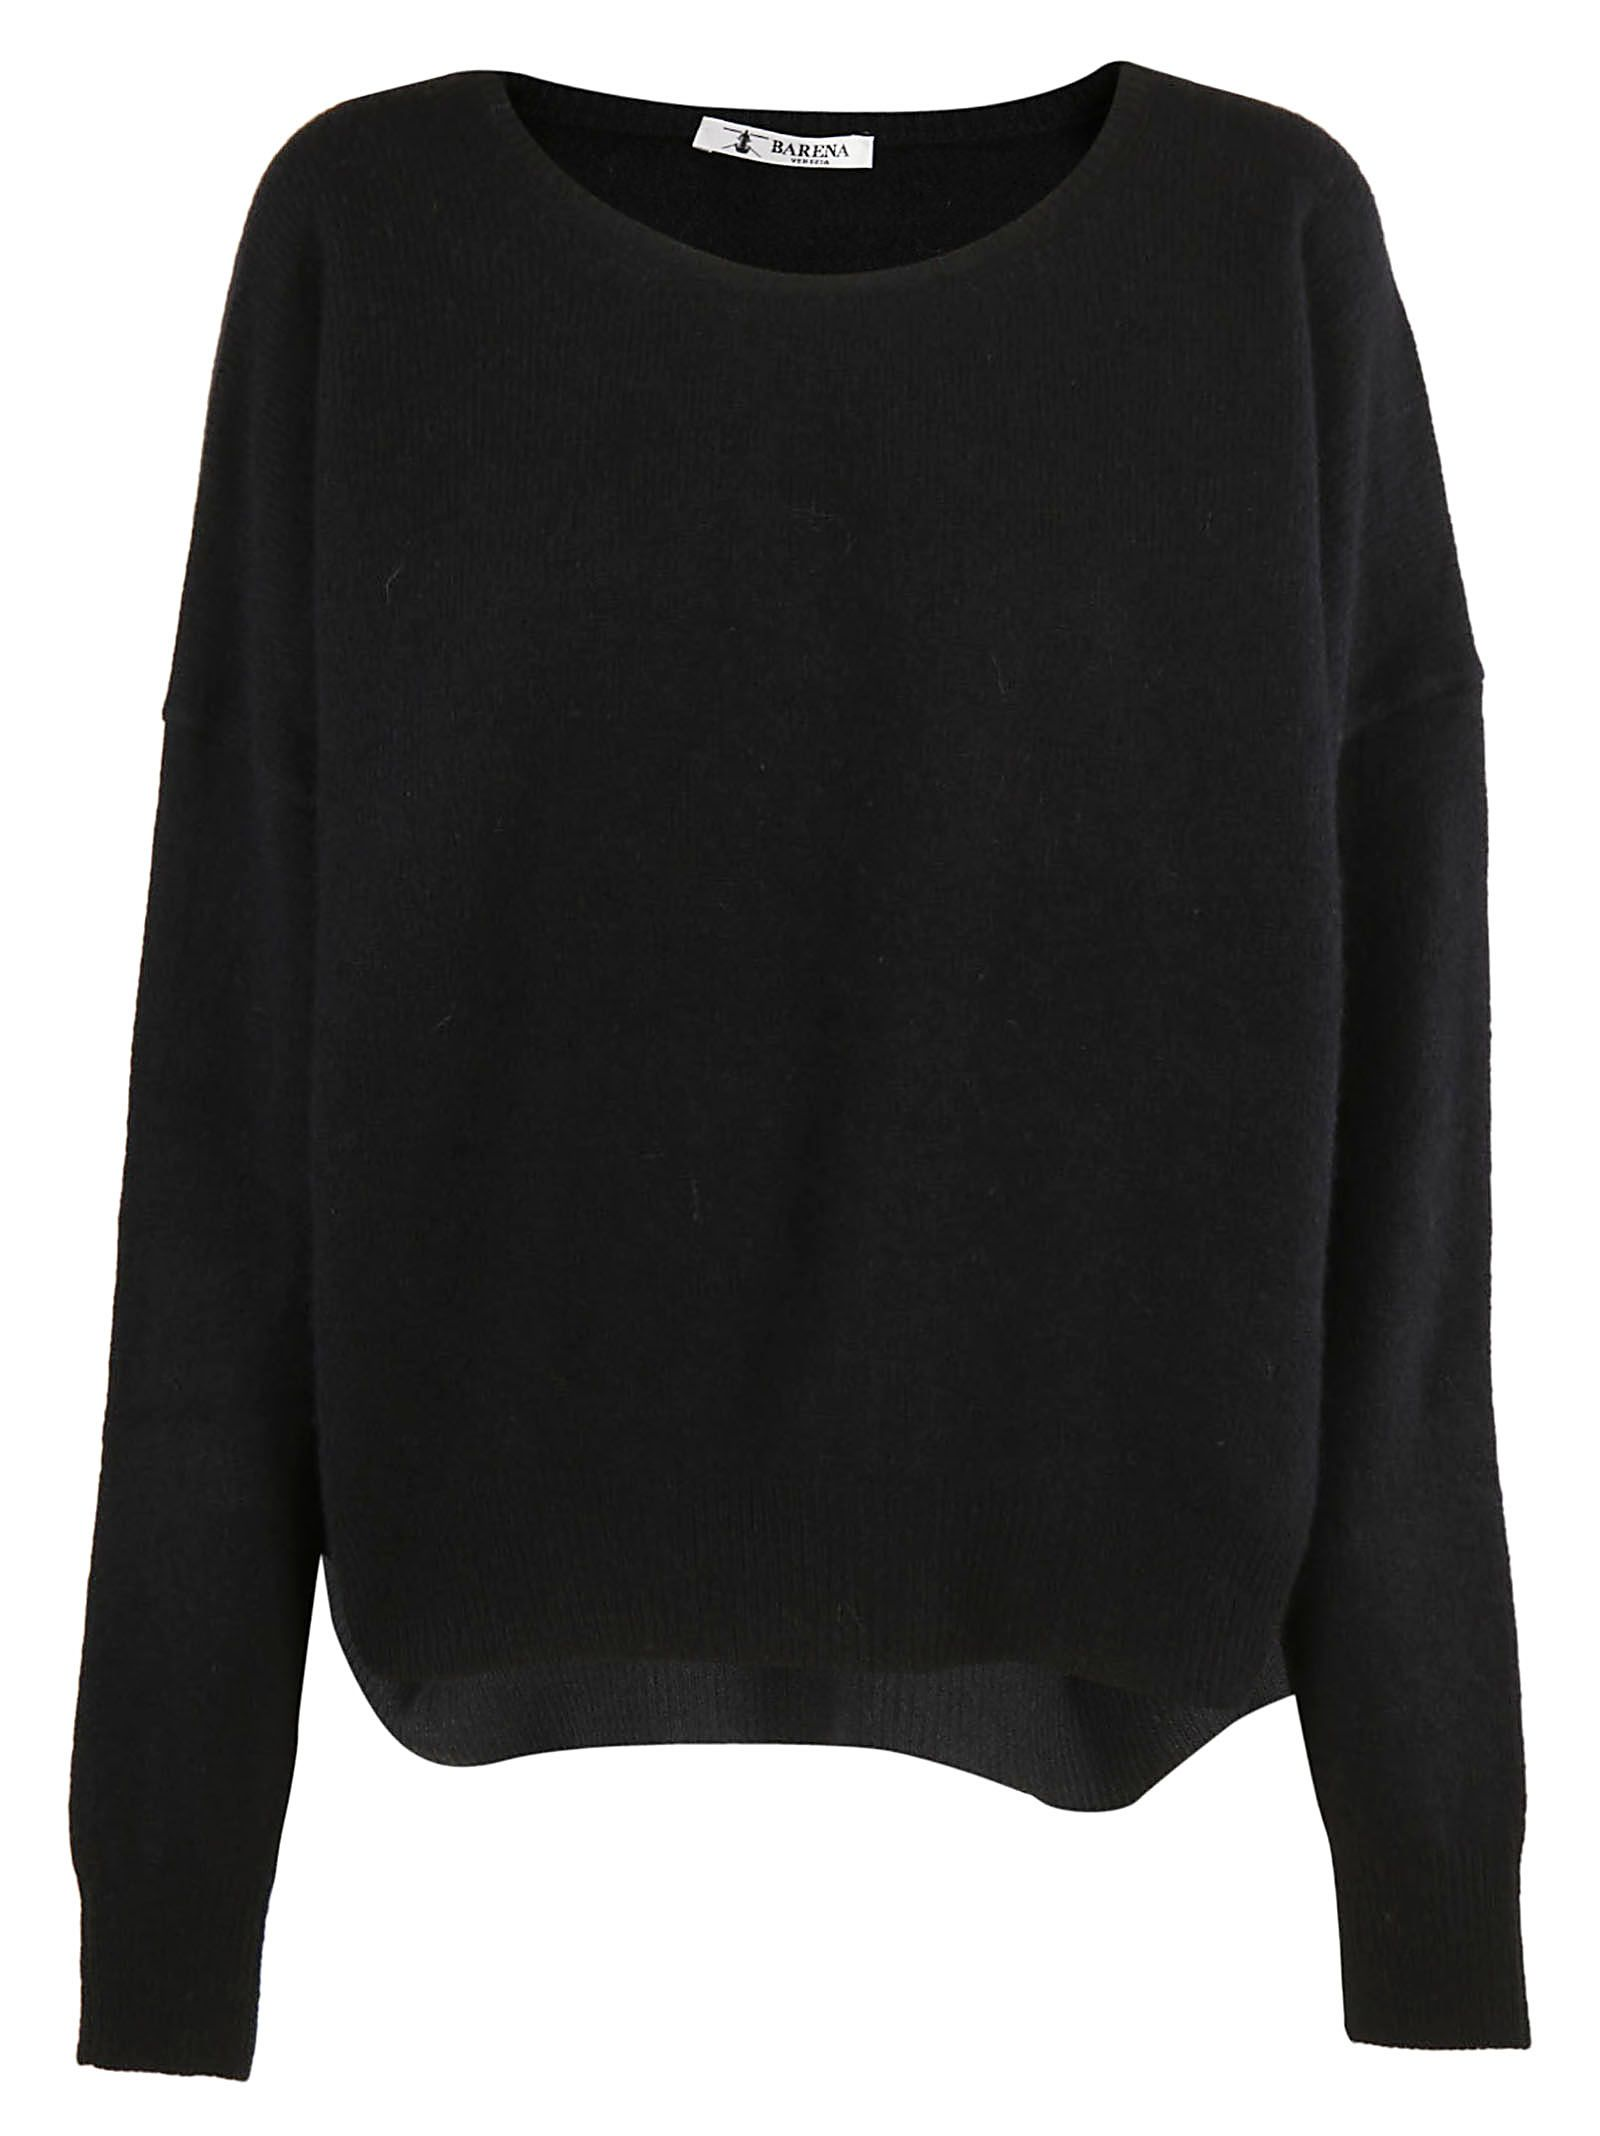 Barena - Barena Round Neck Baggy Sweater - Black, Women's Sweaters ...